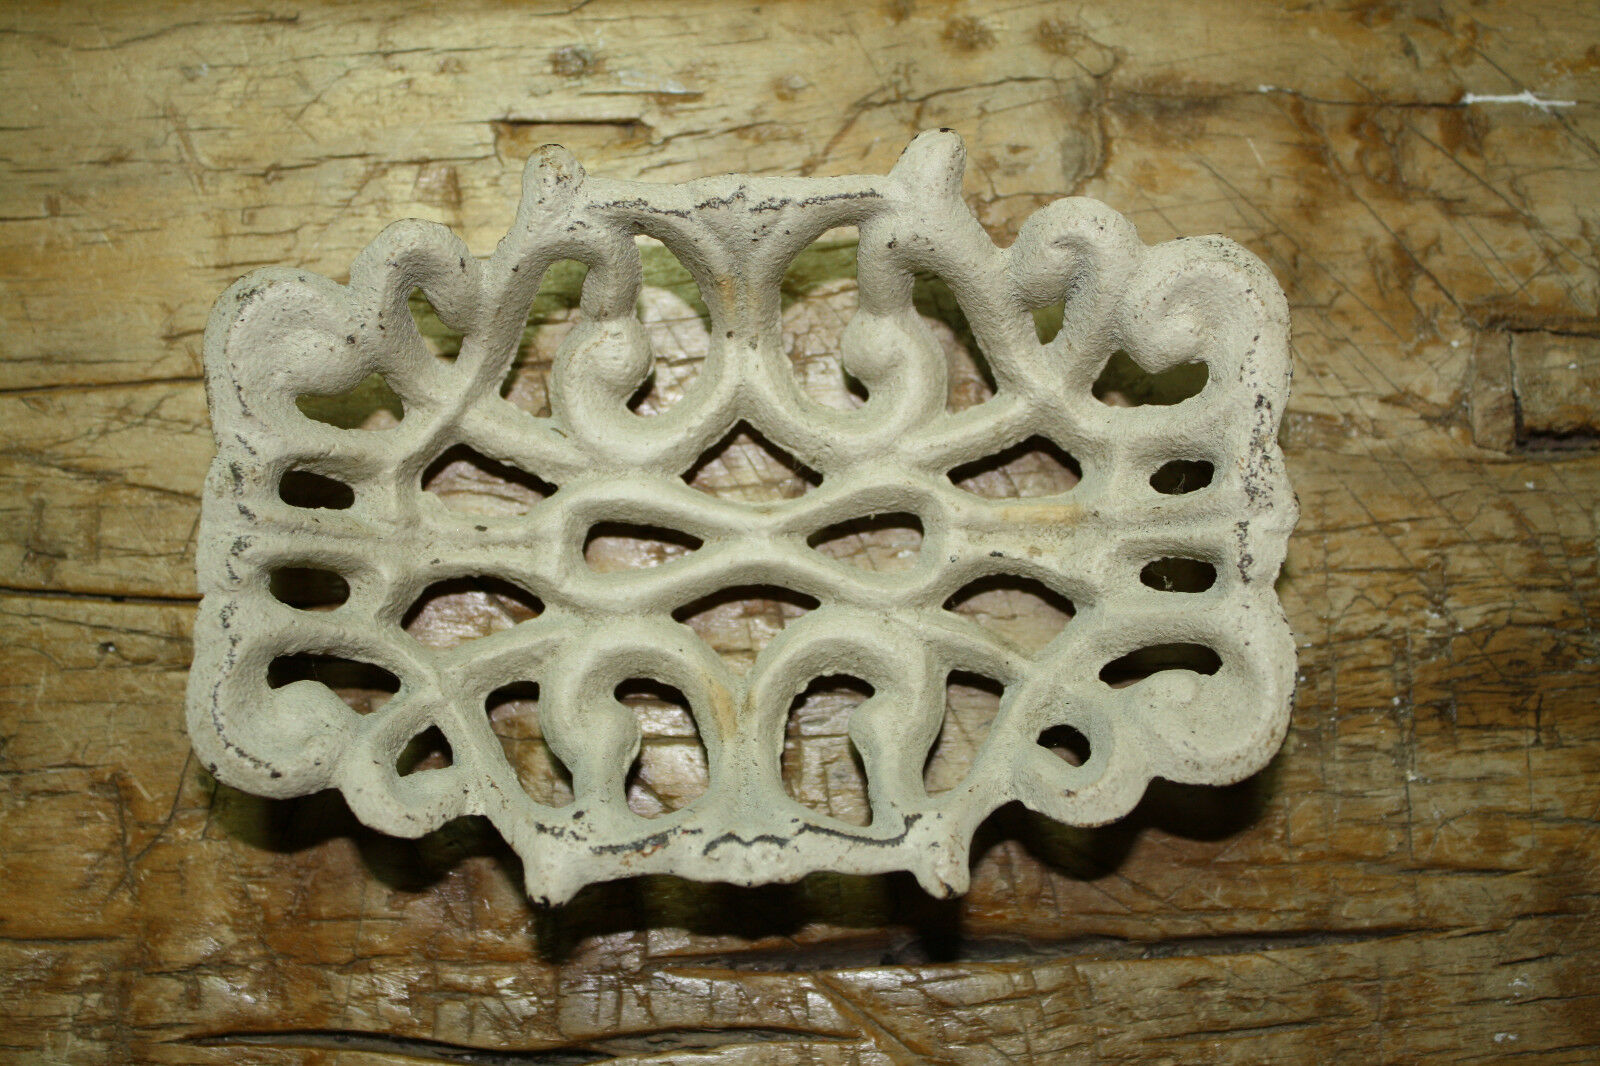 Cast Iron Antique Victorian Style SOAP DISH Rustic Ranch Kitchen Bathroom Decor